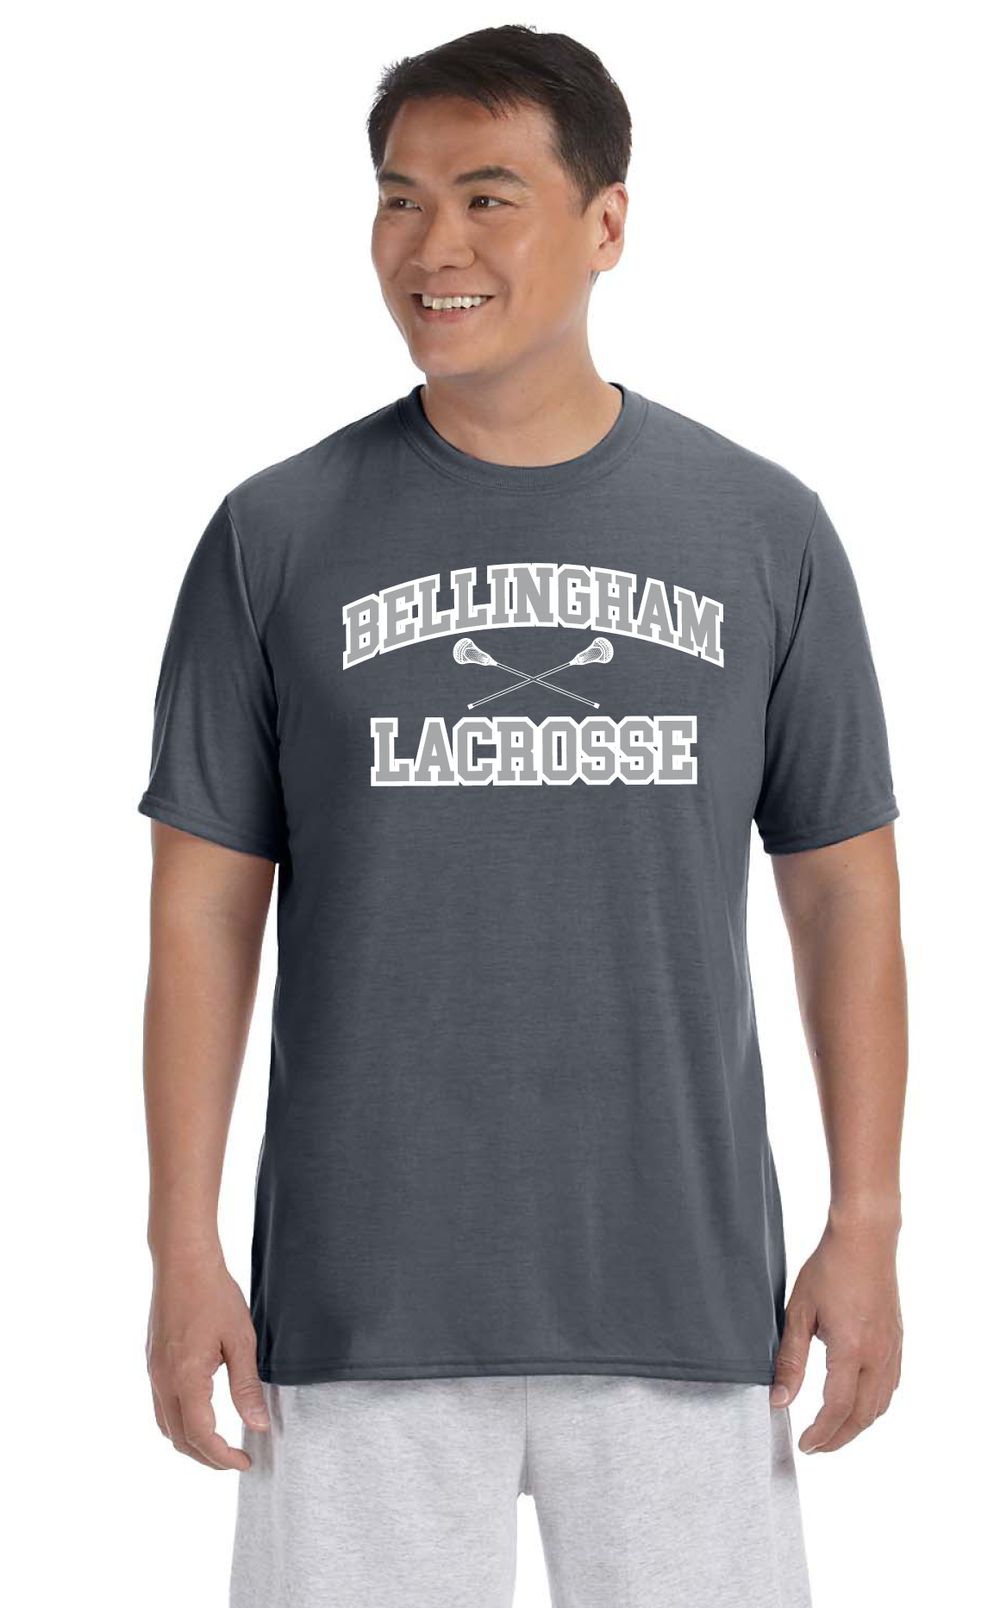 Bellingham Lacrosse Performance Tee - From $18